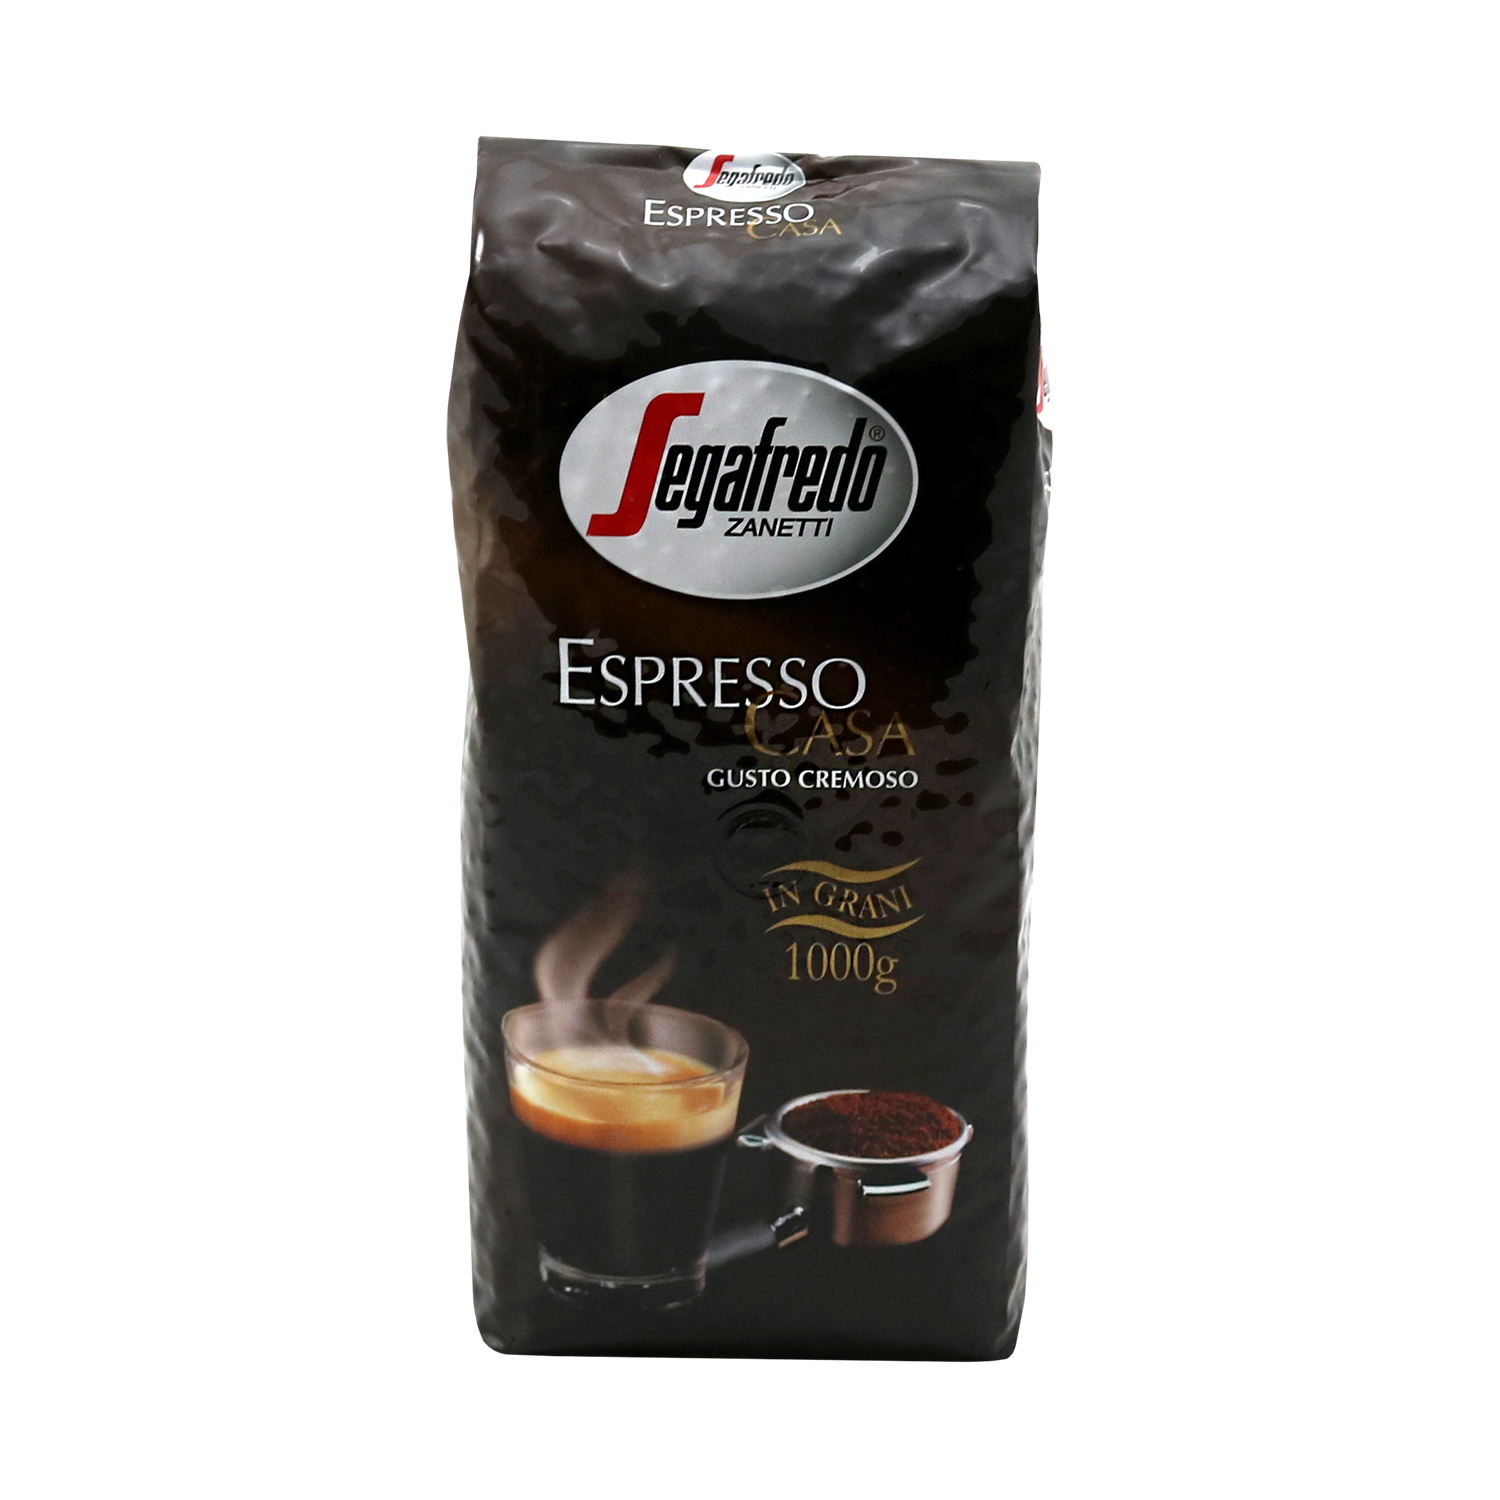 segafredo 1 kg espresso ganze bohnen kaffee casa packung ebay. Black Bedroom Furniture Sets. Home Design Ideas